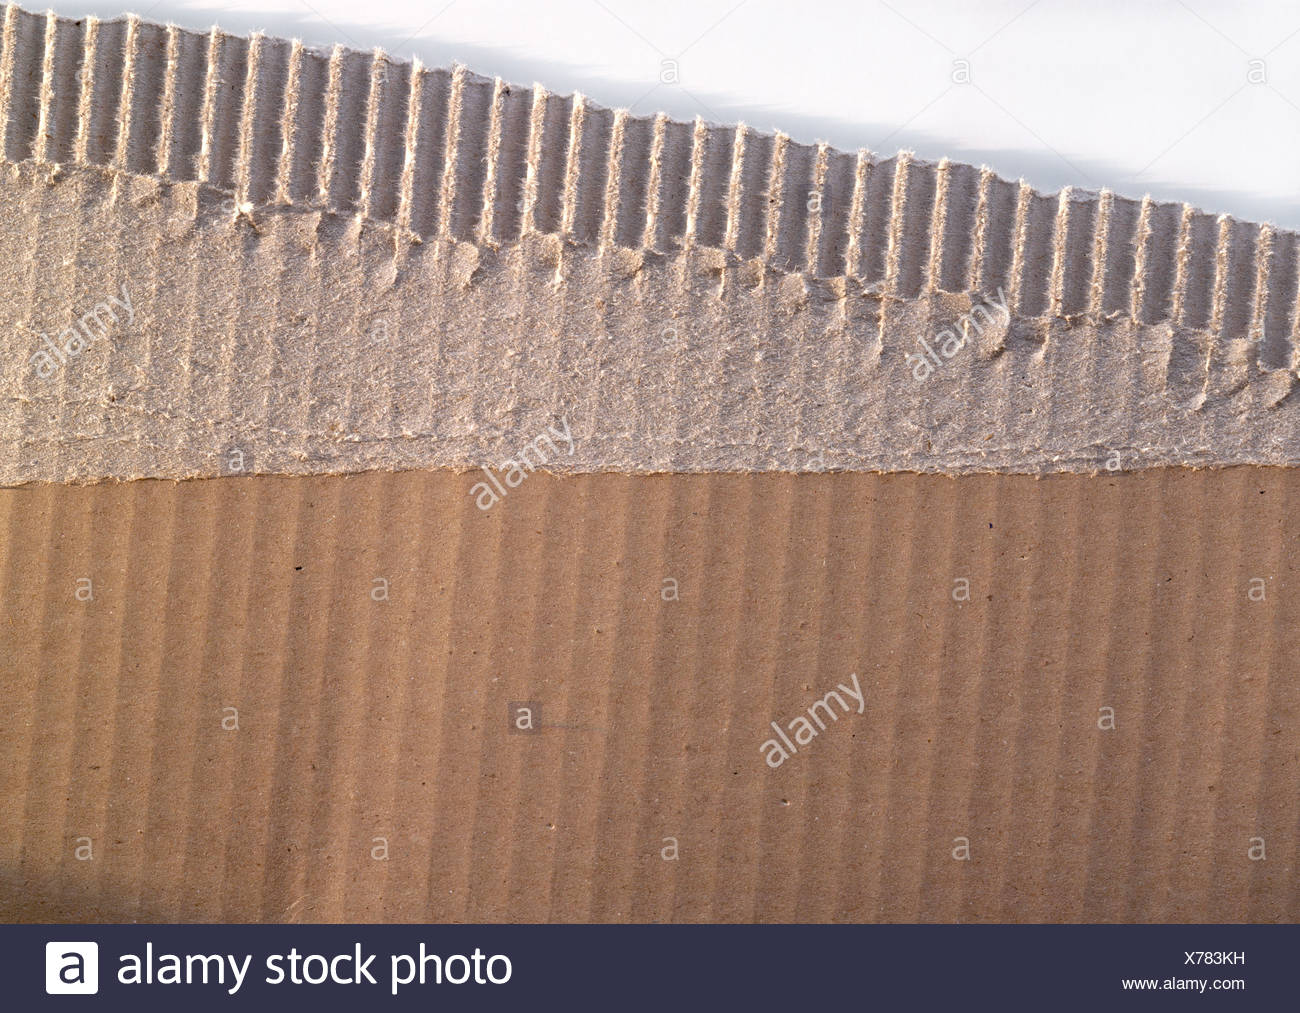 Piece of corrugated carboard, close-up - Stock Image